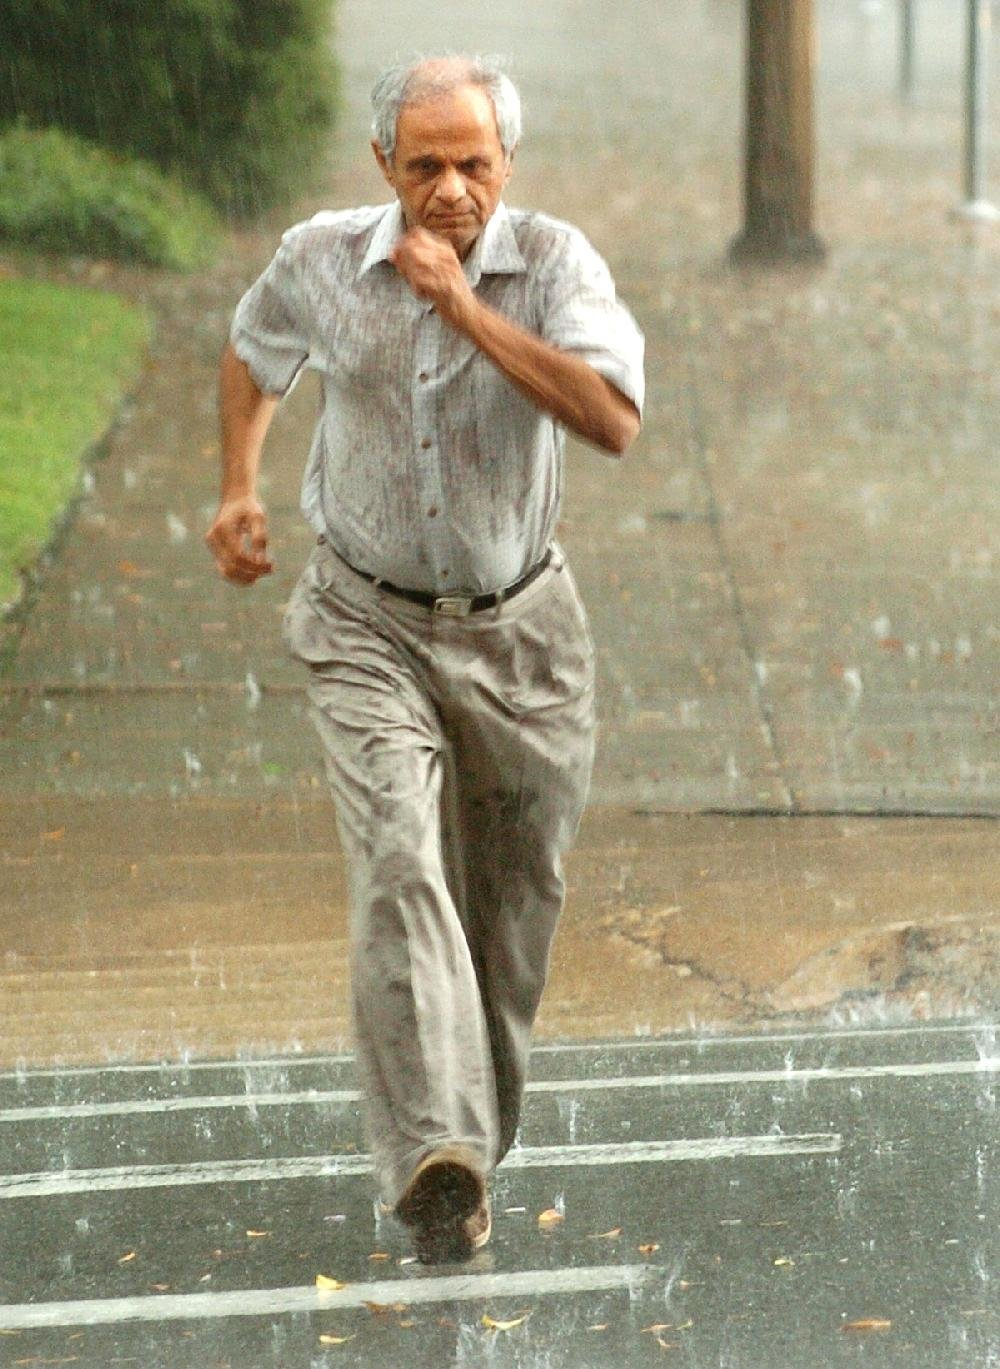 """Imran Bohra runs for cover during a sudden thunderstorm in downtown Little Rock in this October 2010 feature photo. An attorney who specializes in housing matters calls Bohra a """"slumlord on steroids"""" for his treatment of people who rent property from him."""